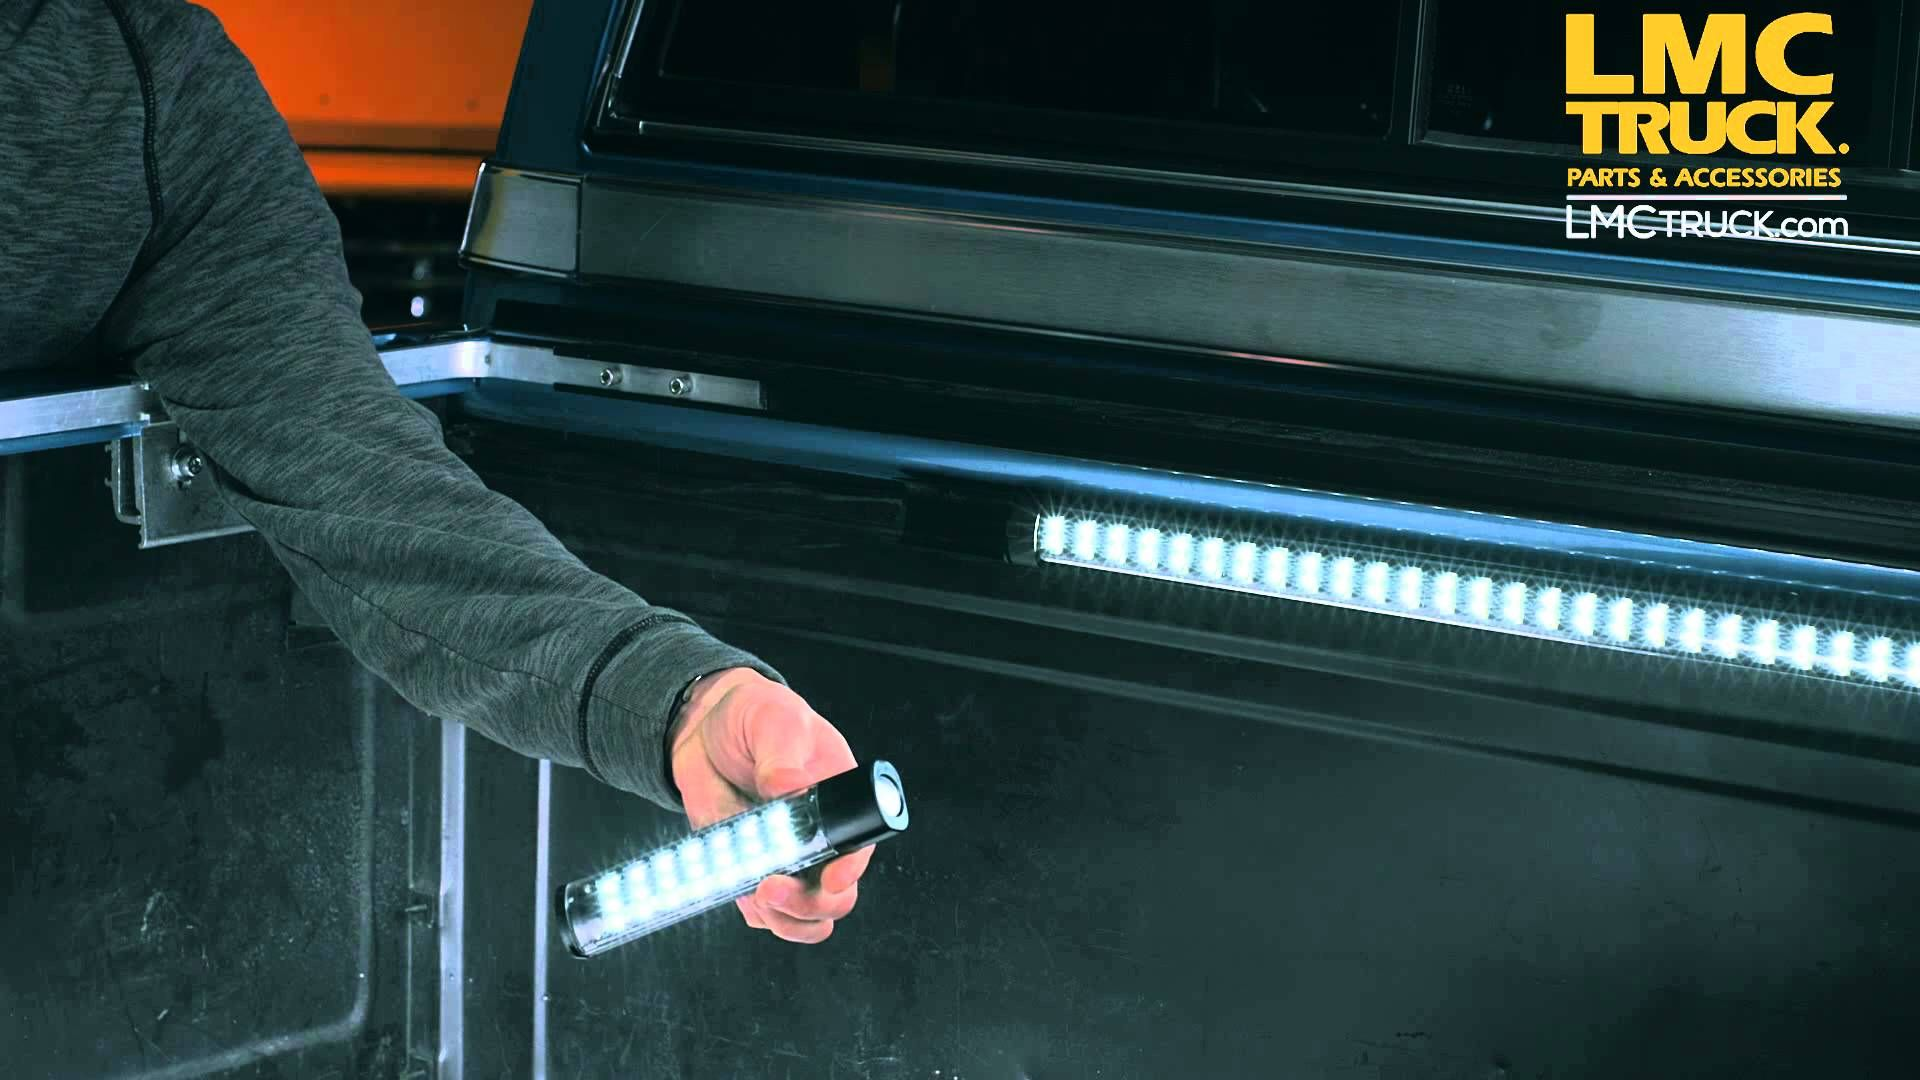 Led utility light bar httplmctruckproduct videosled truck bed bars with lights in the present world the use of electronics and appliances are essential for daily living aloadofball Image collections